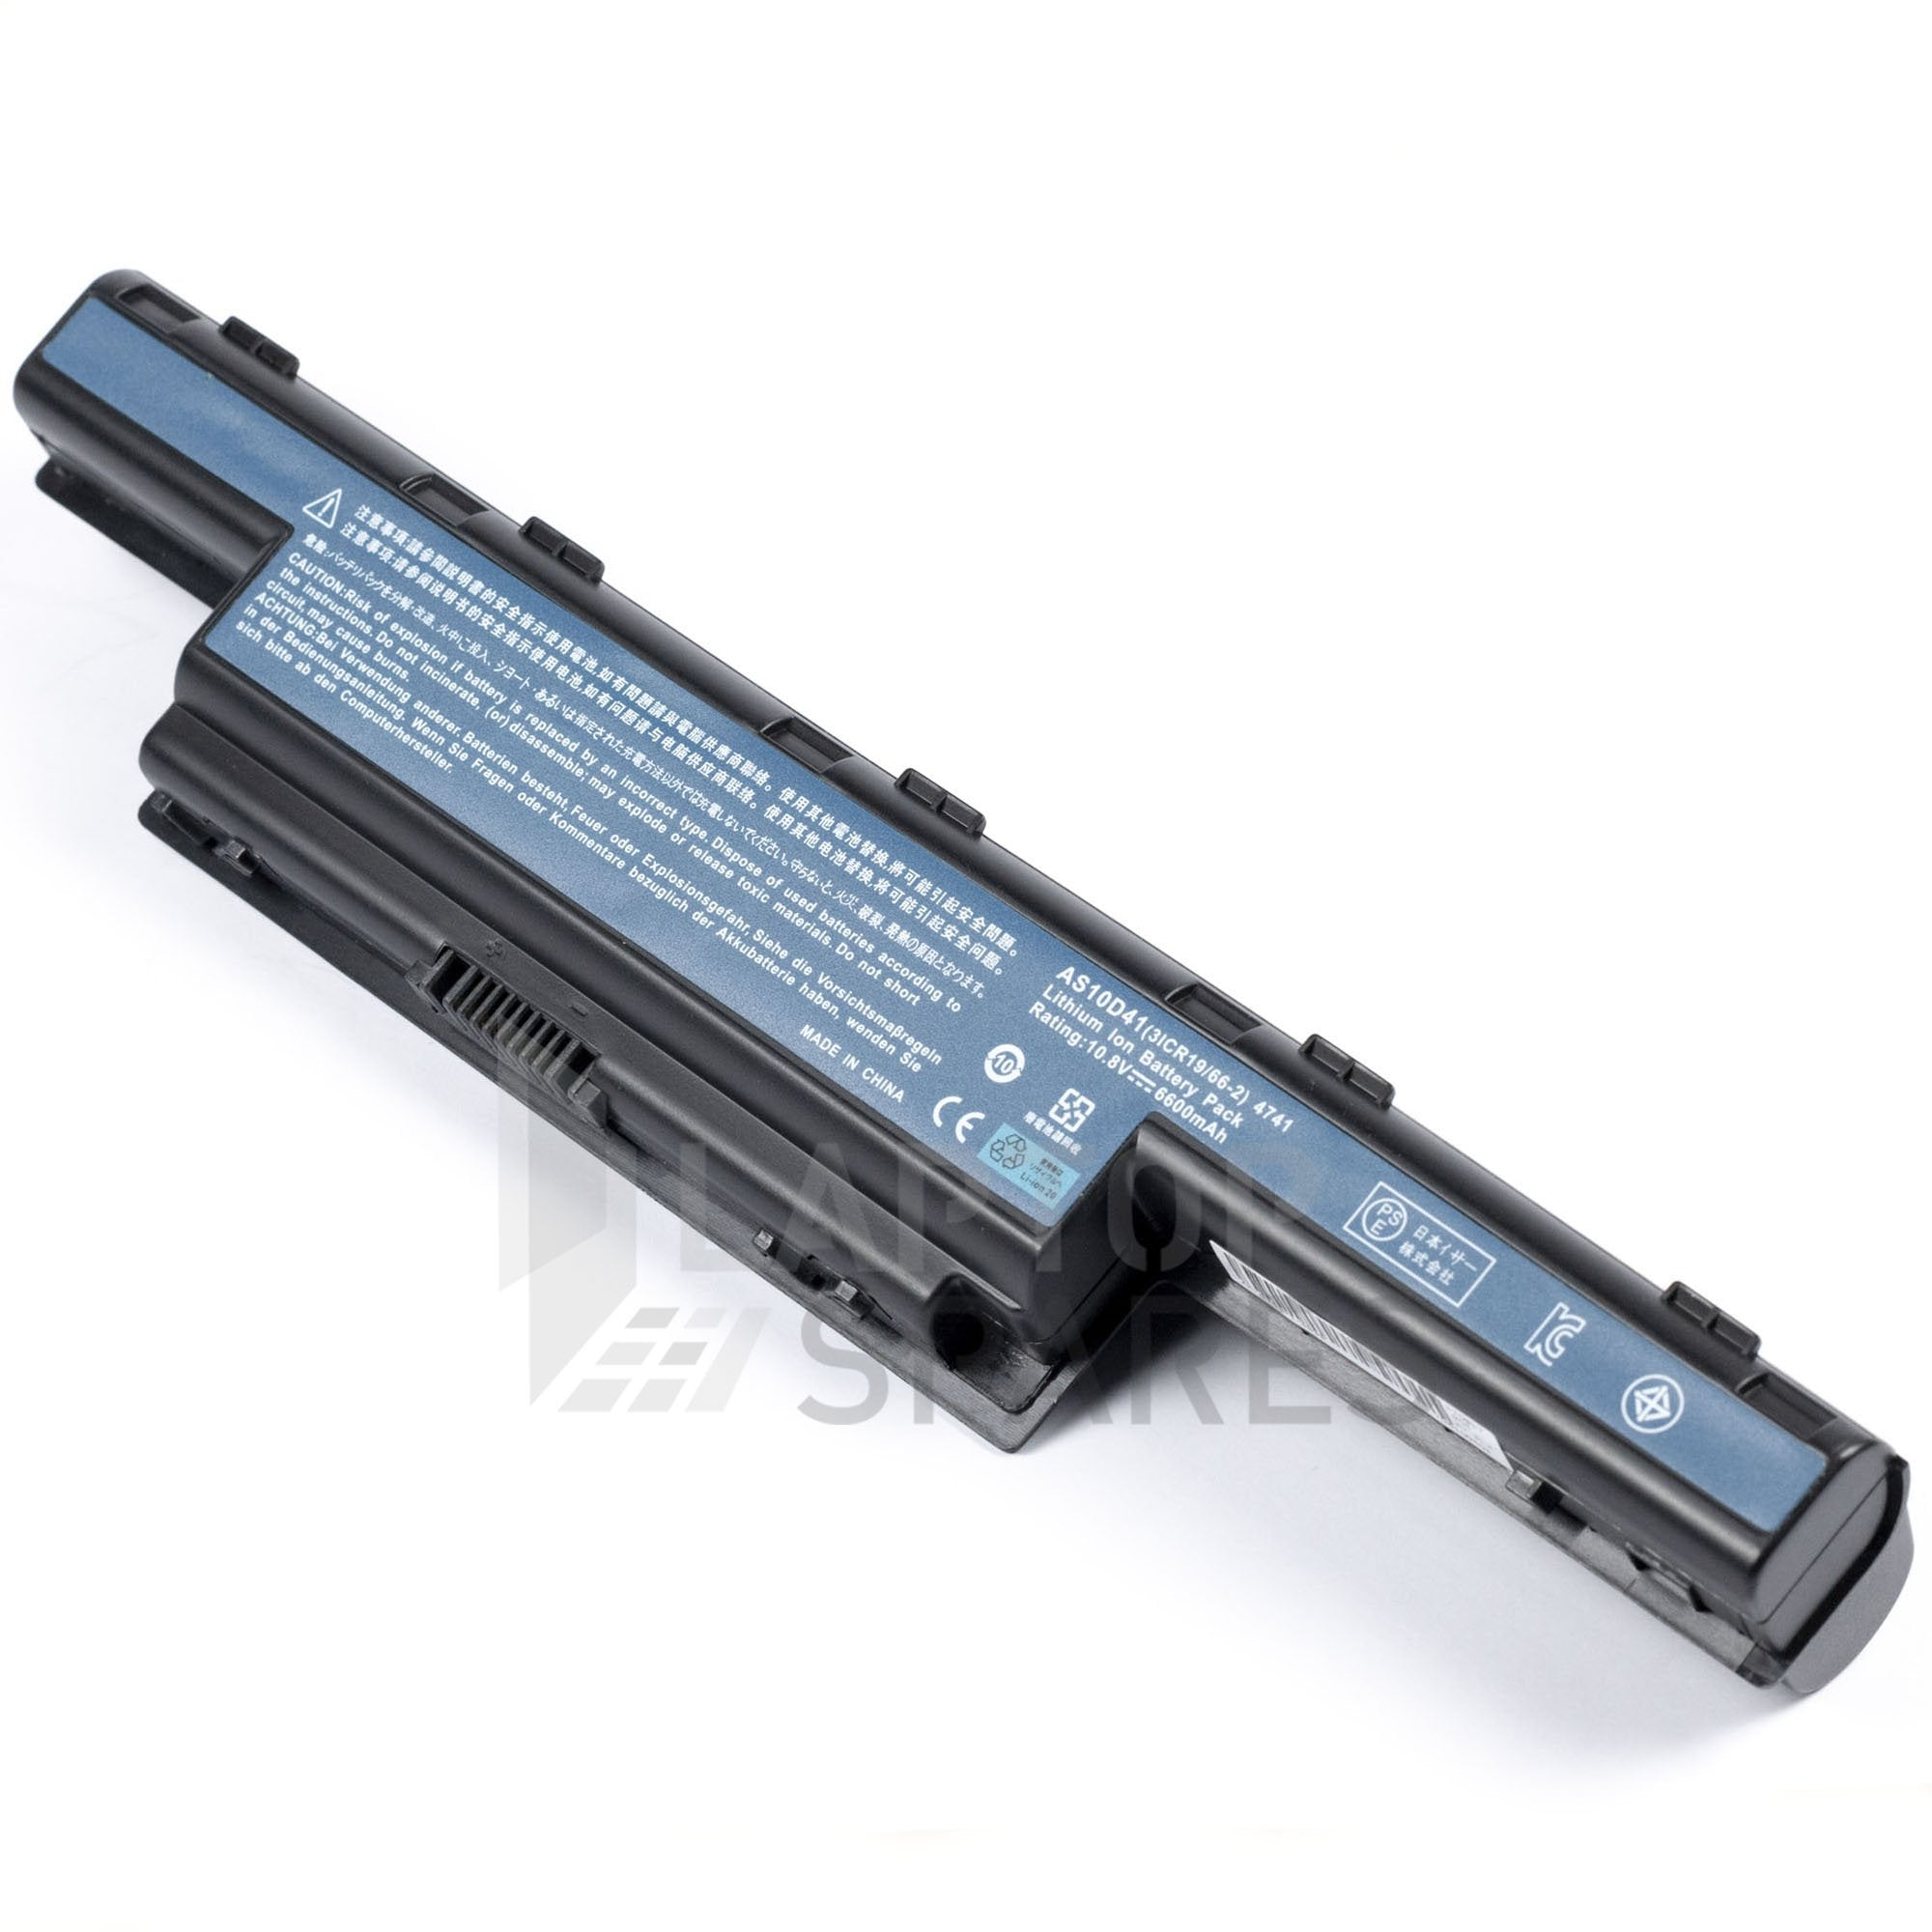 Acer eMachine G730ZG 6600mAh 9 Cell Battery